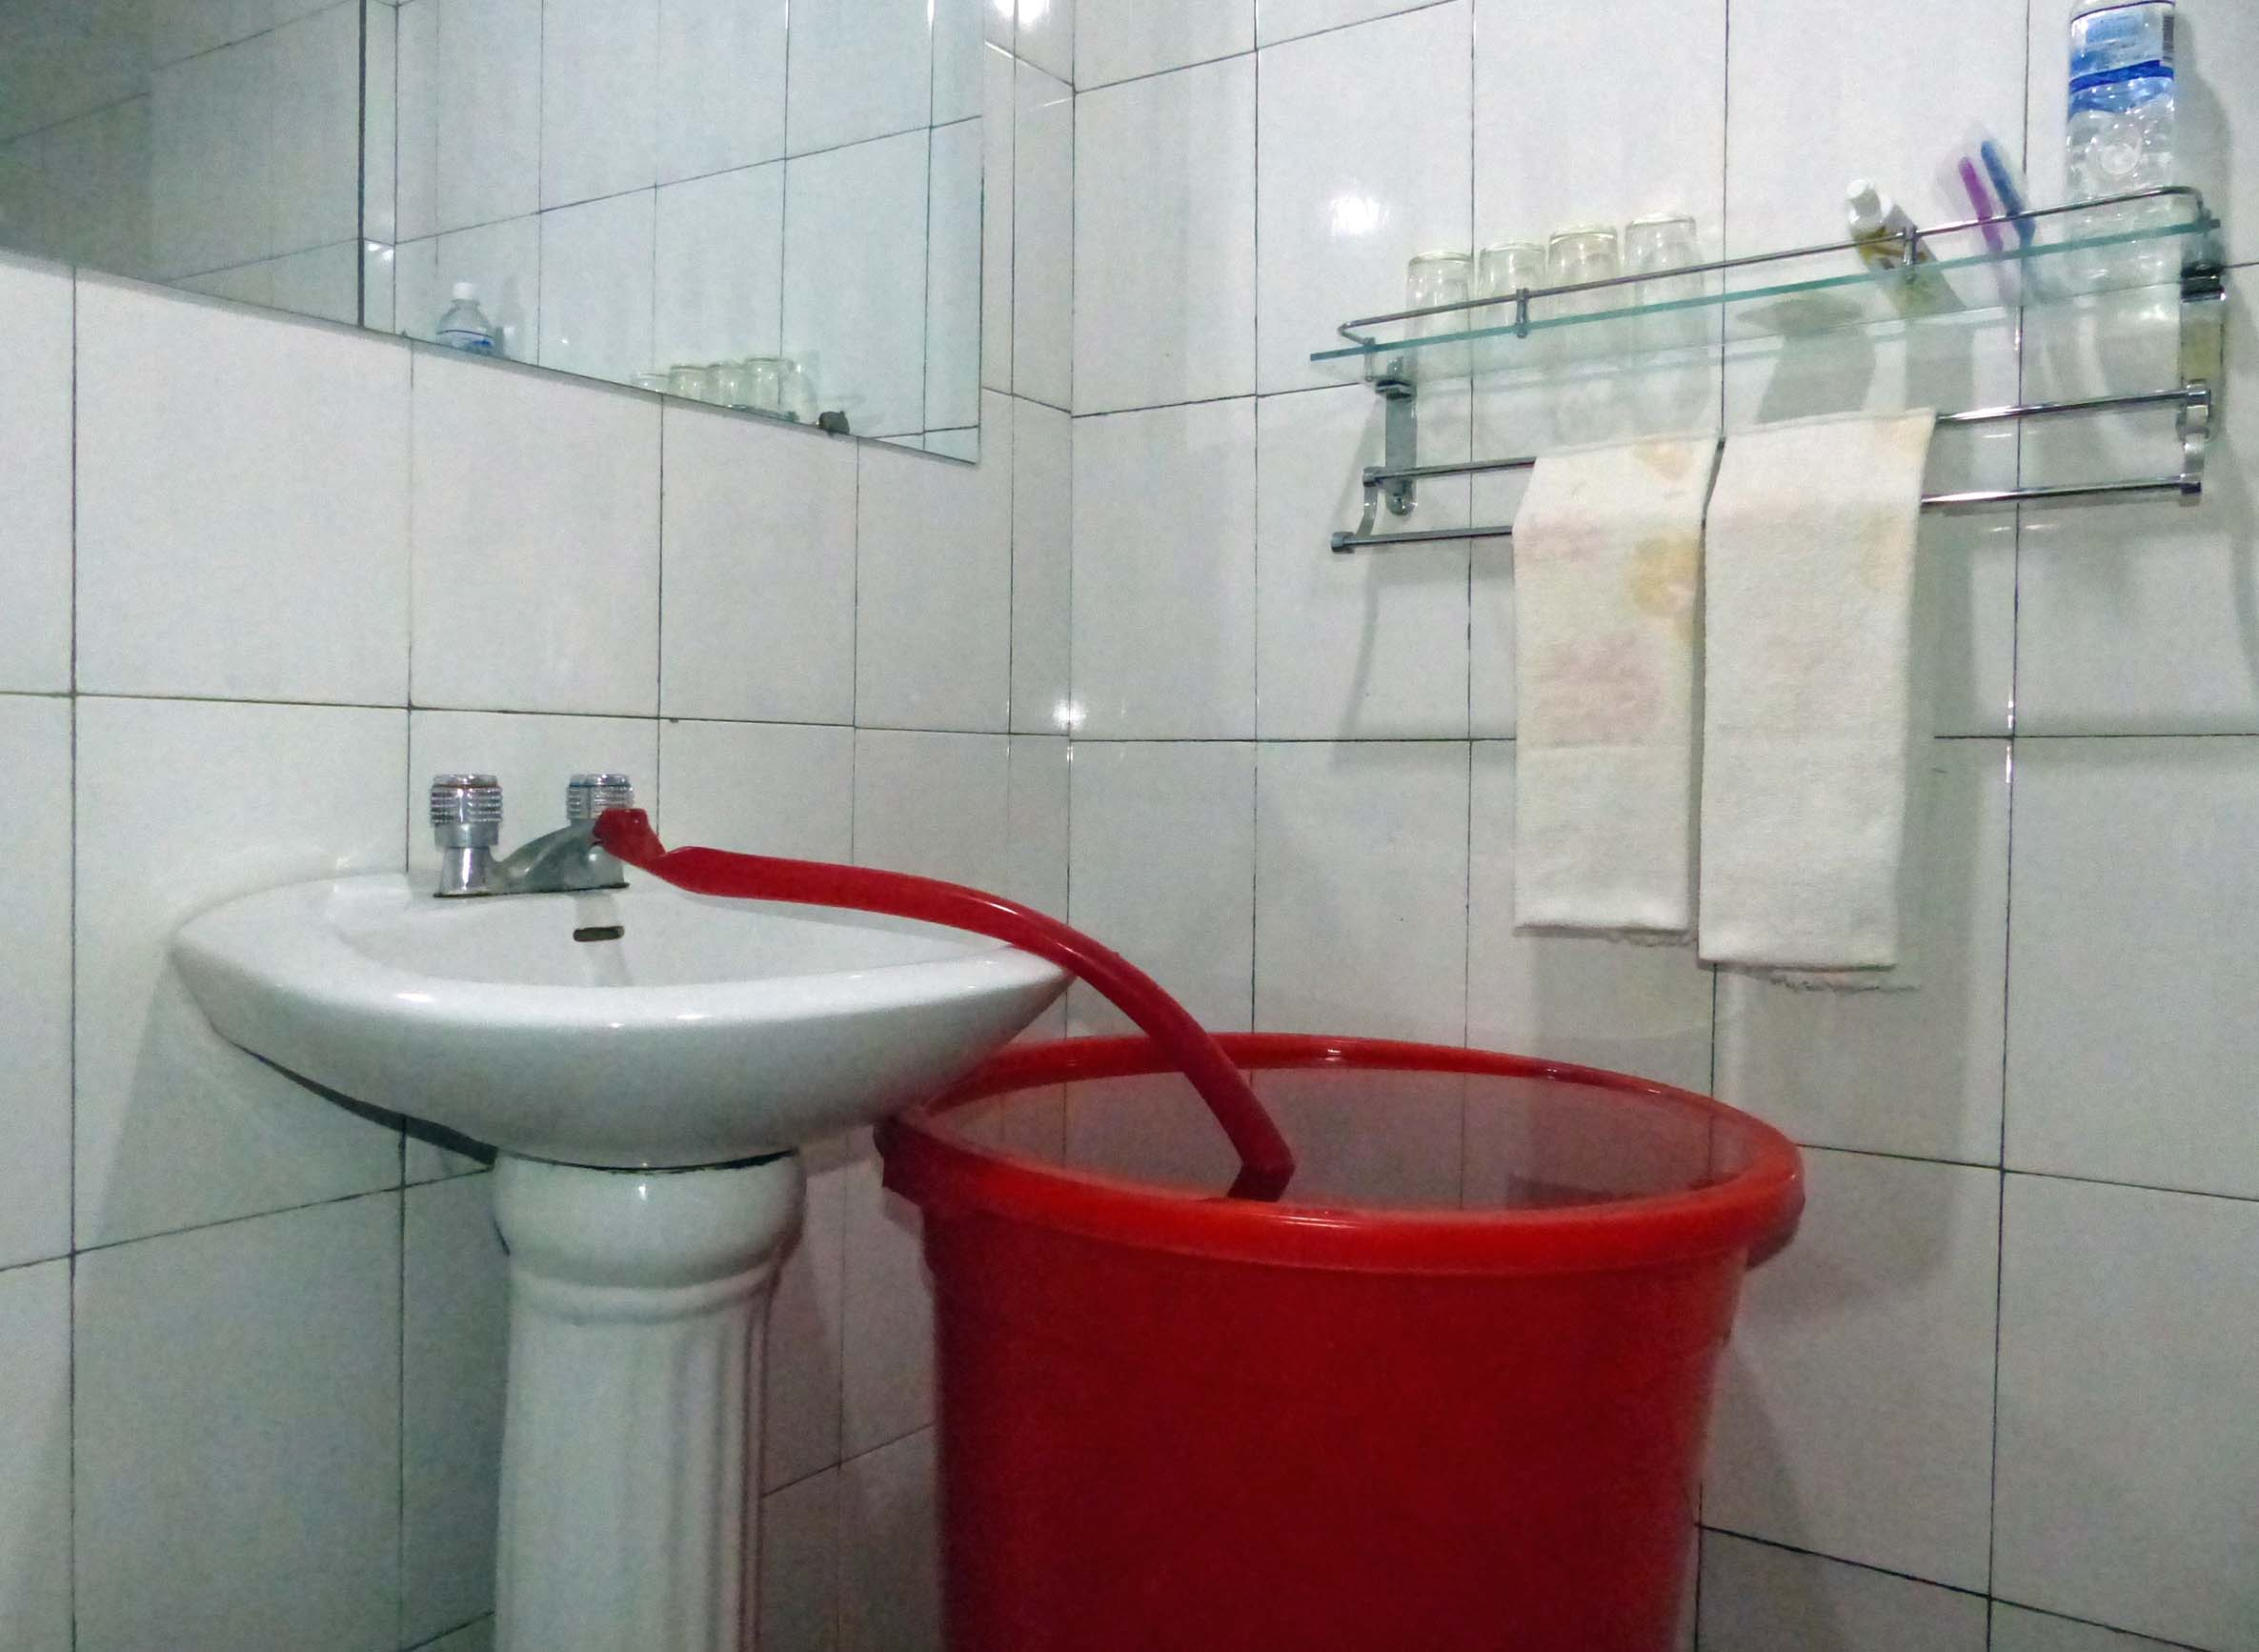 Big red tub with hose from washbasin tap